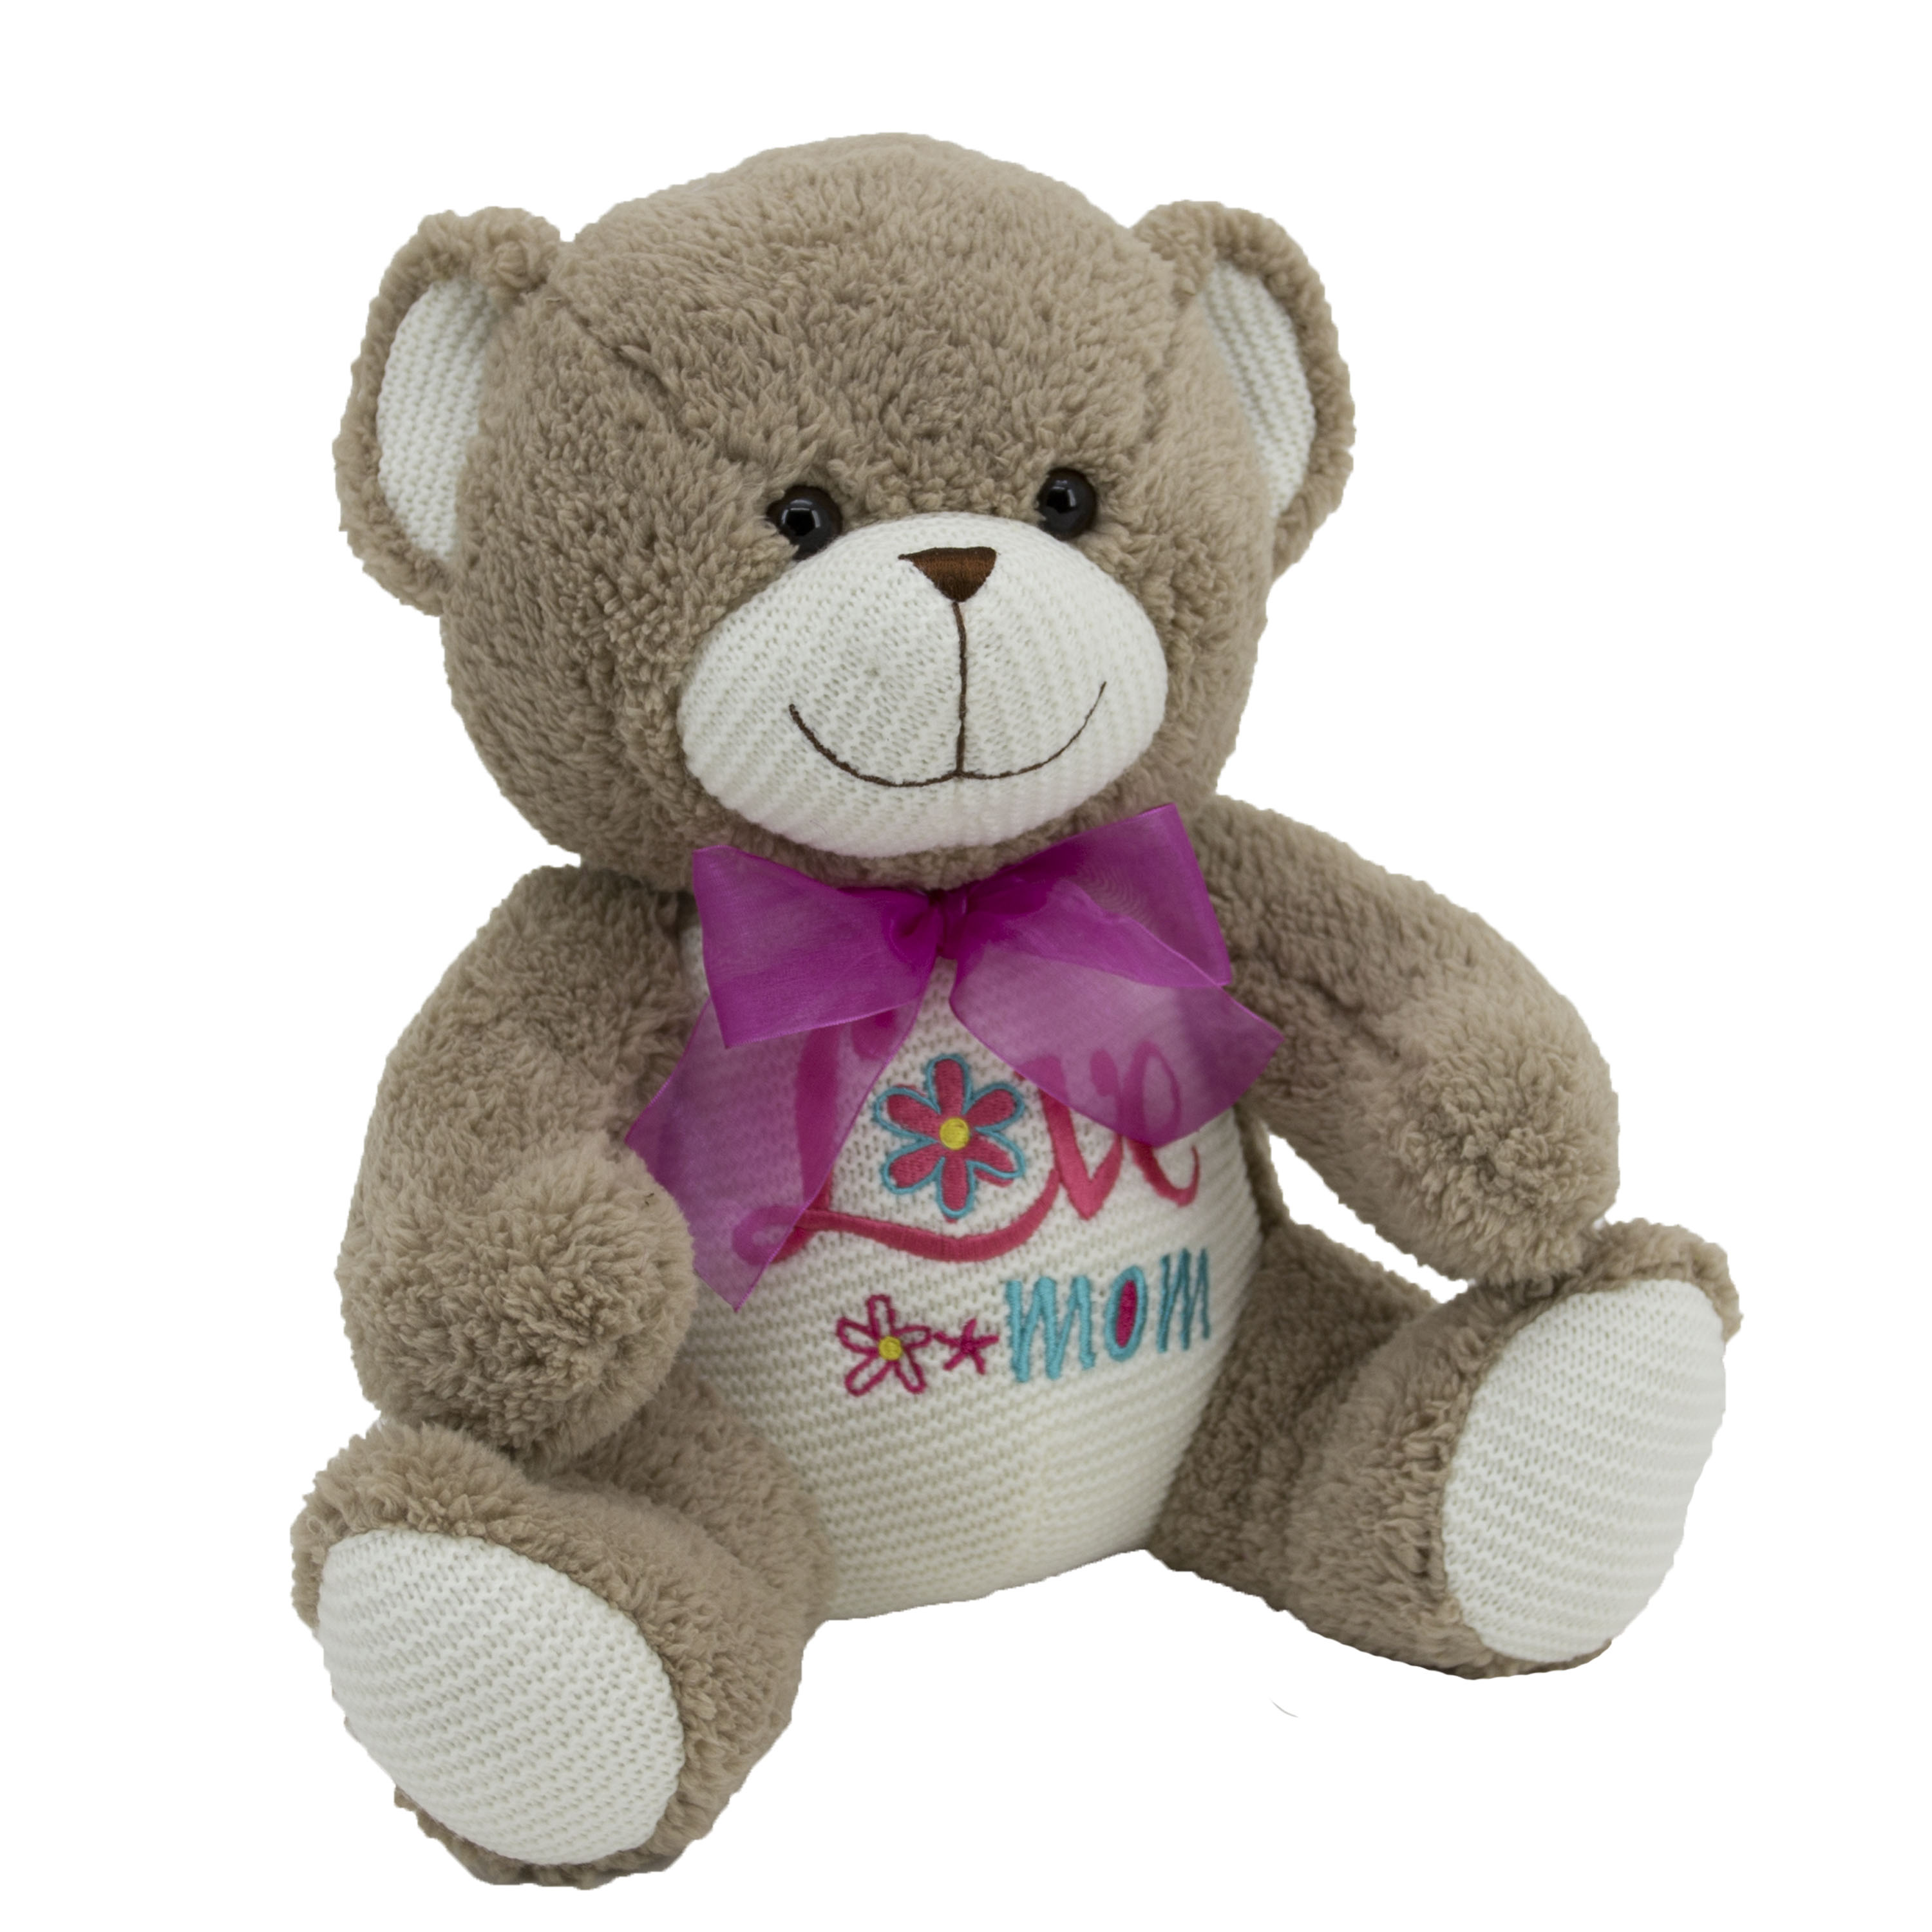 14-Inch Teddy Bear - Love Mom